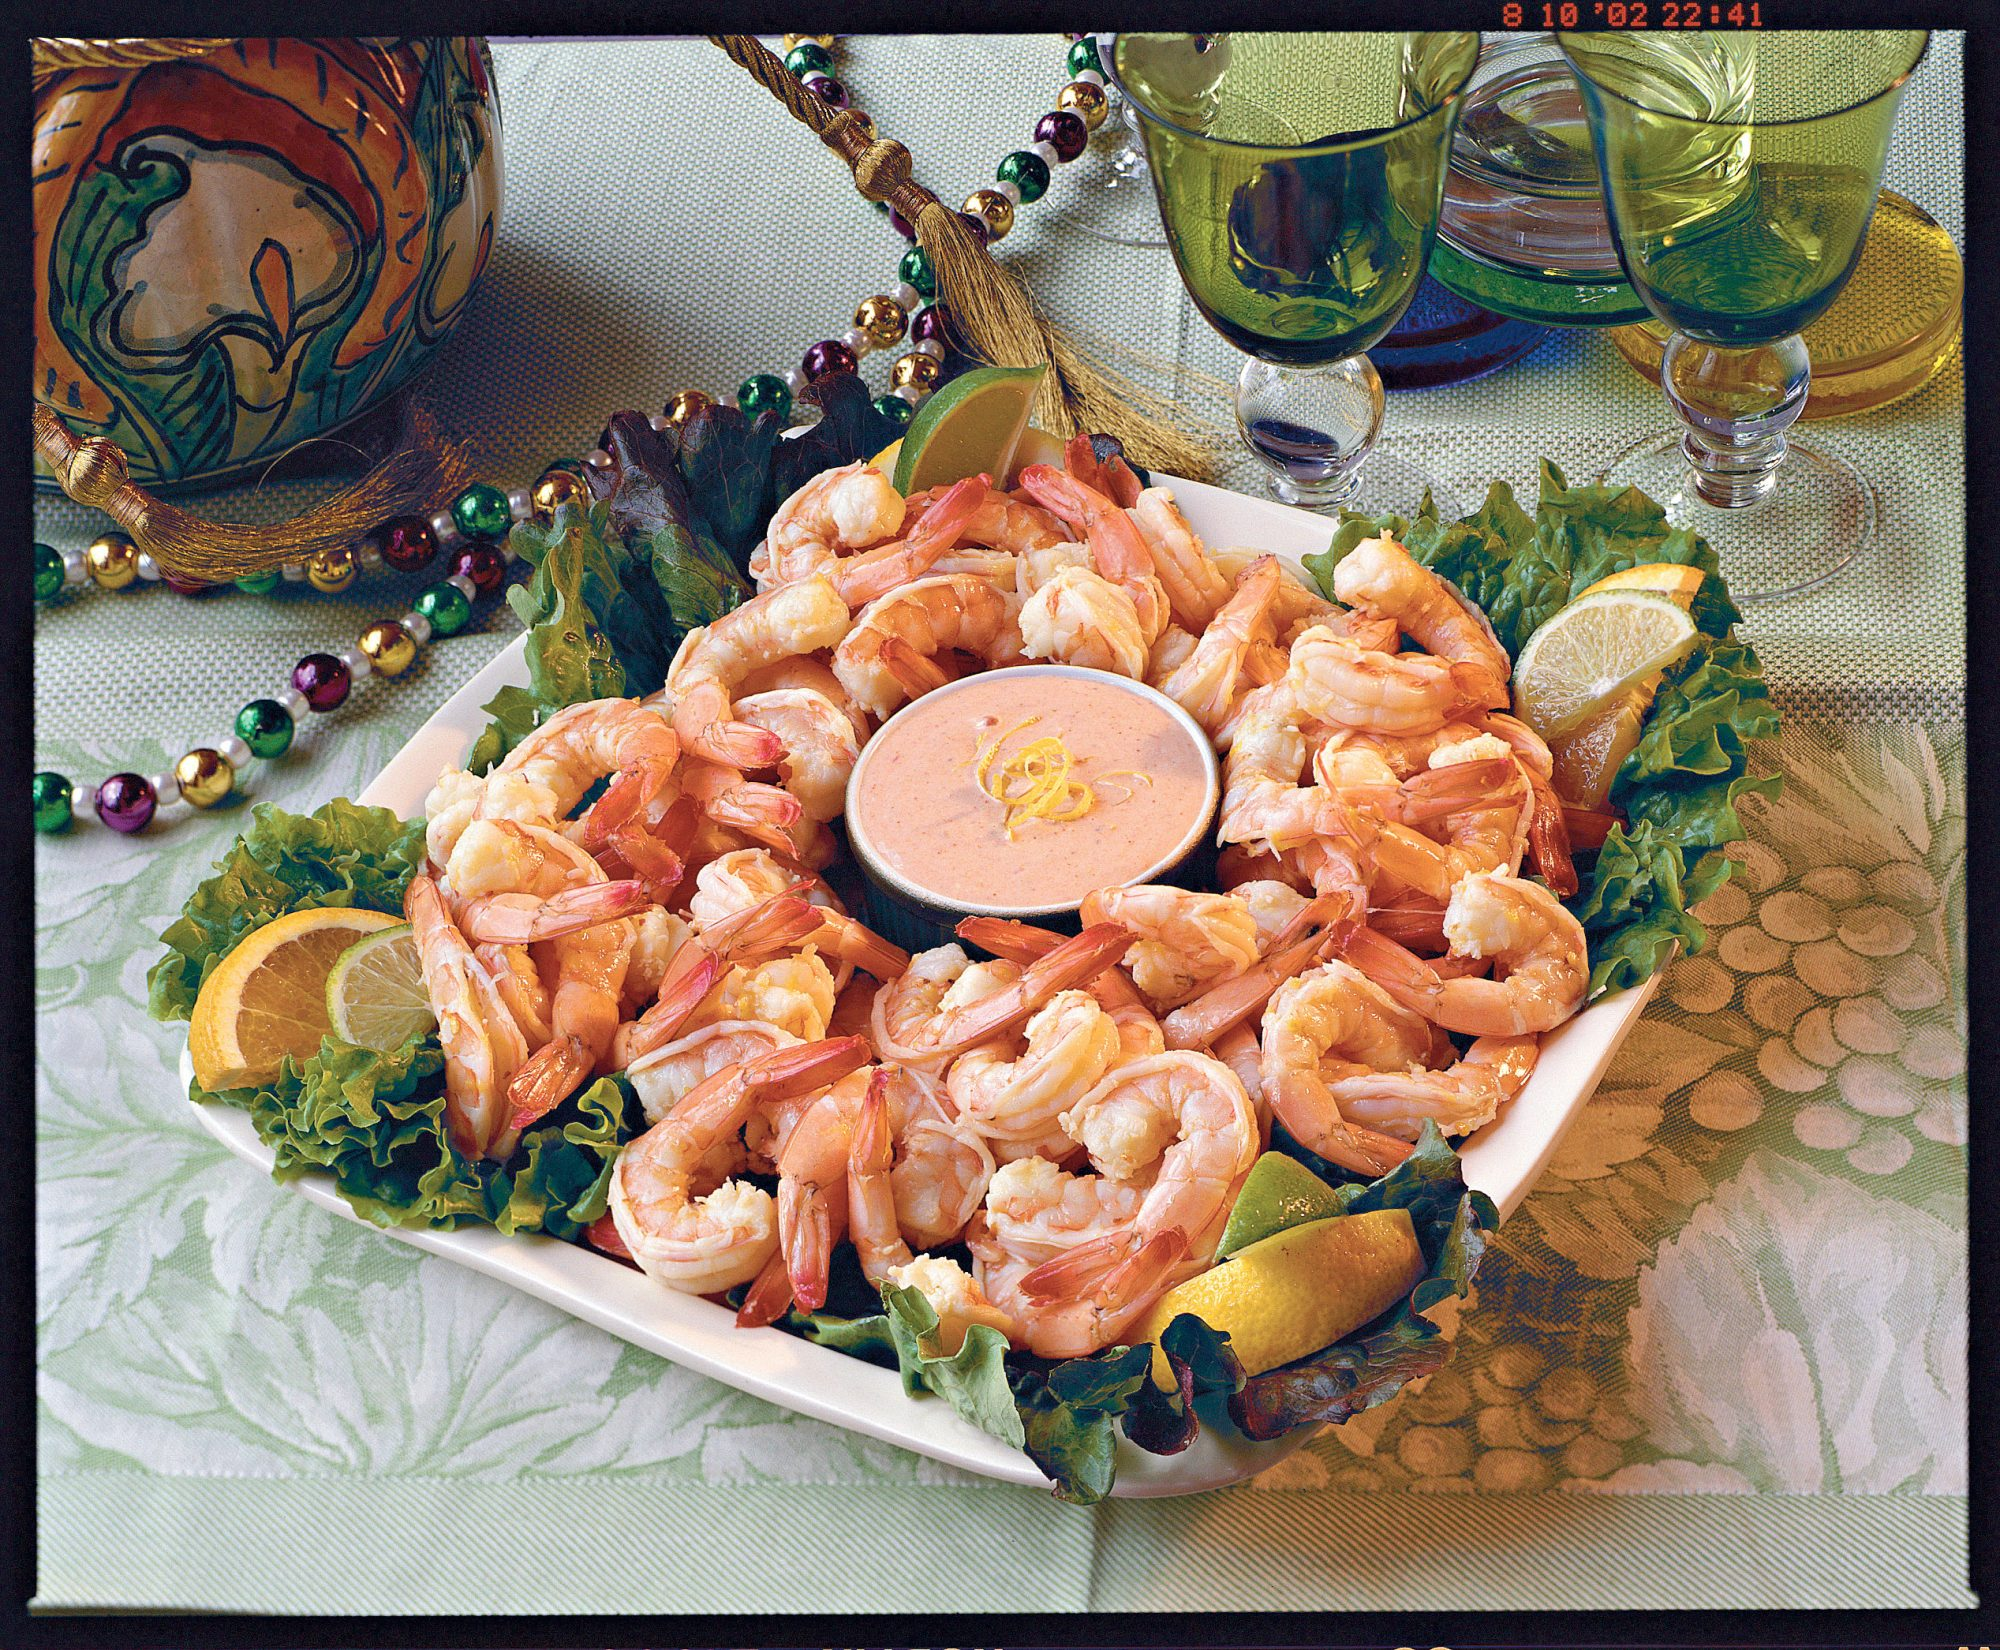 Cajun Recipes: Citrus-Marinated Shrimp with Louis Sauce